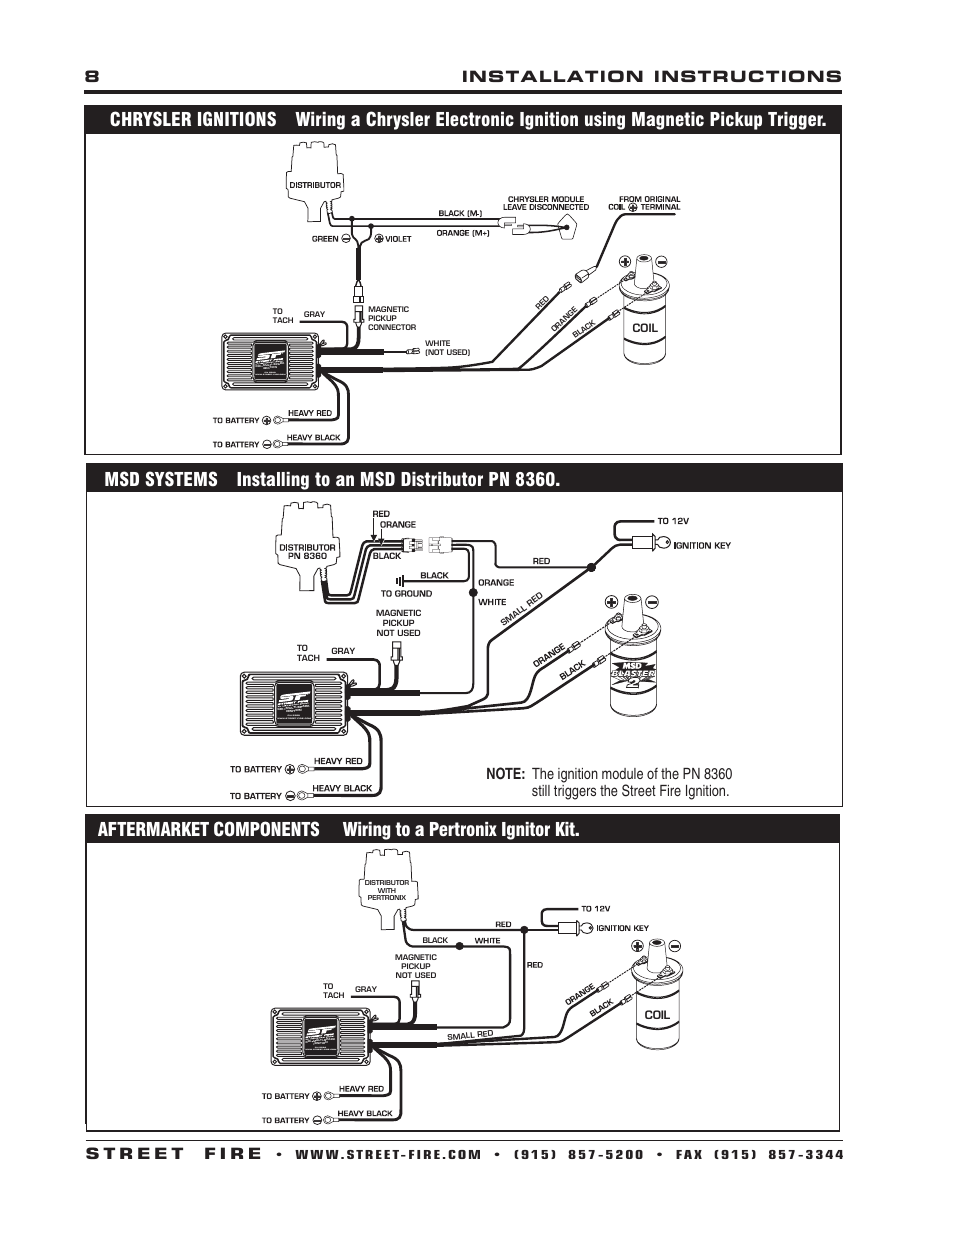 gm obd ii wiring diagram html with Plug N Play Billet Distributors Pertronix Distributor Wire Diagram Gm on Schematics wiring moreover Obd Wiring Diagram as well Daewoo obd ii diag pinout also 2014 auto wiring dlc in addition Schematics wiring.